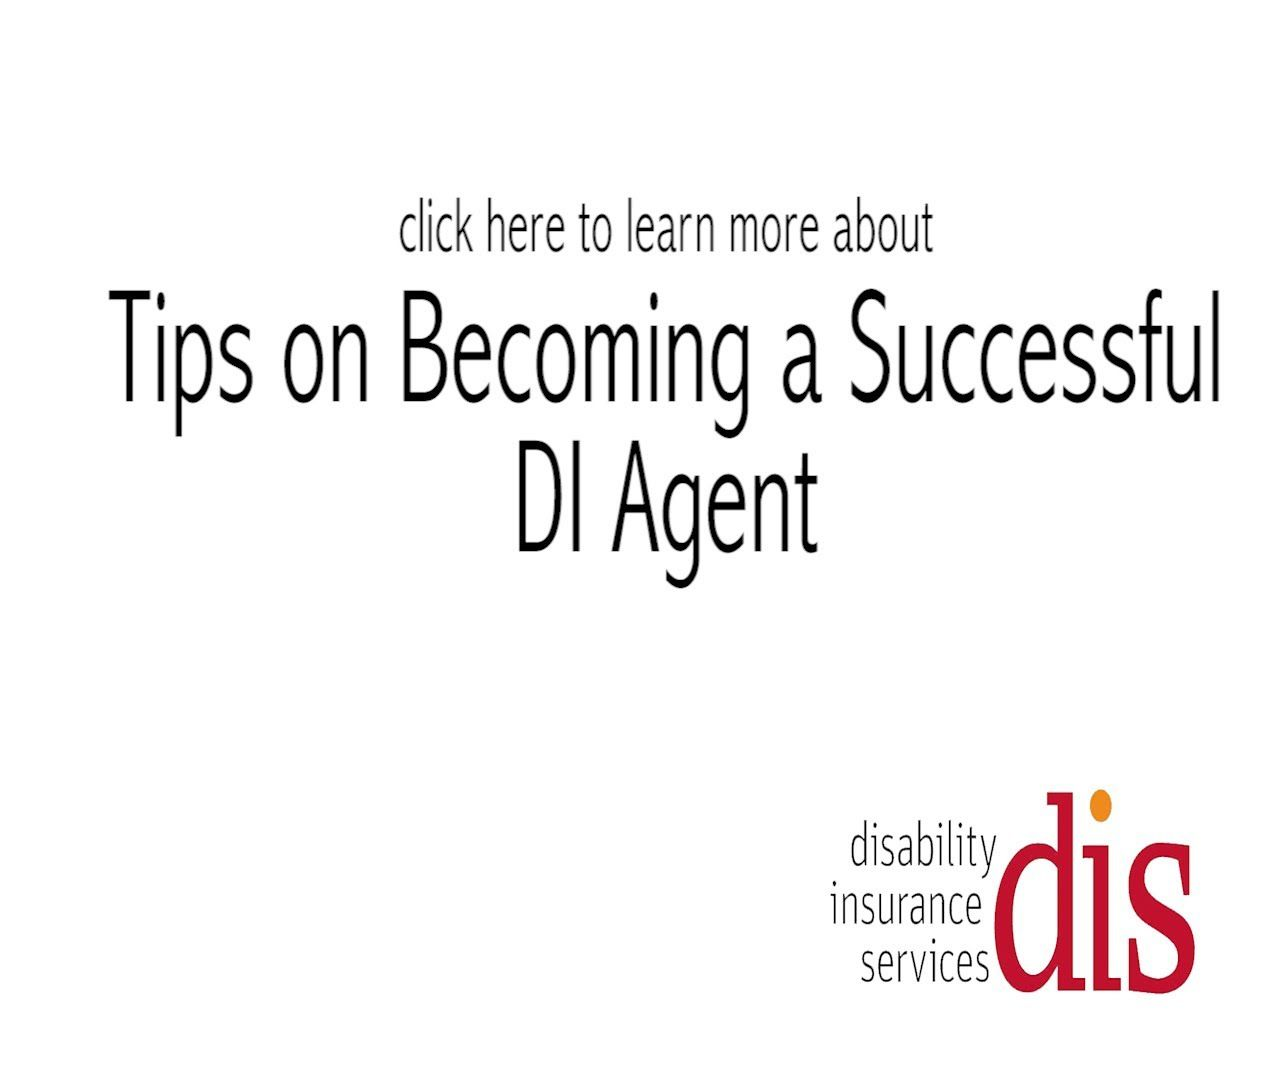 Tips On Becoming A Successful Disability Insurance Agent With Dan